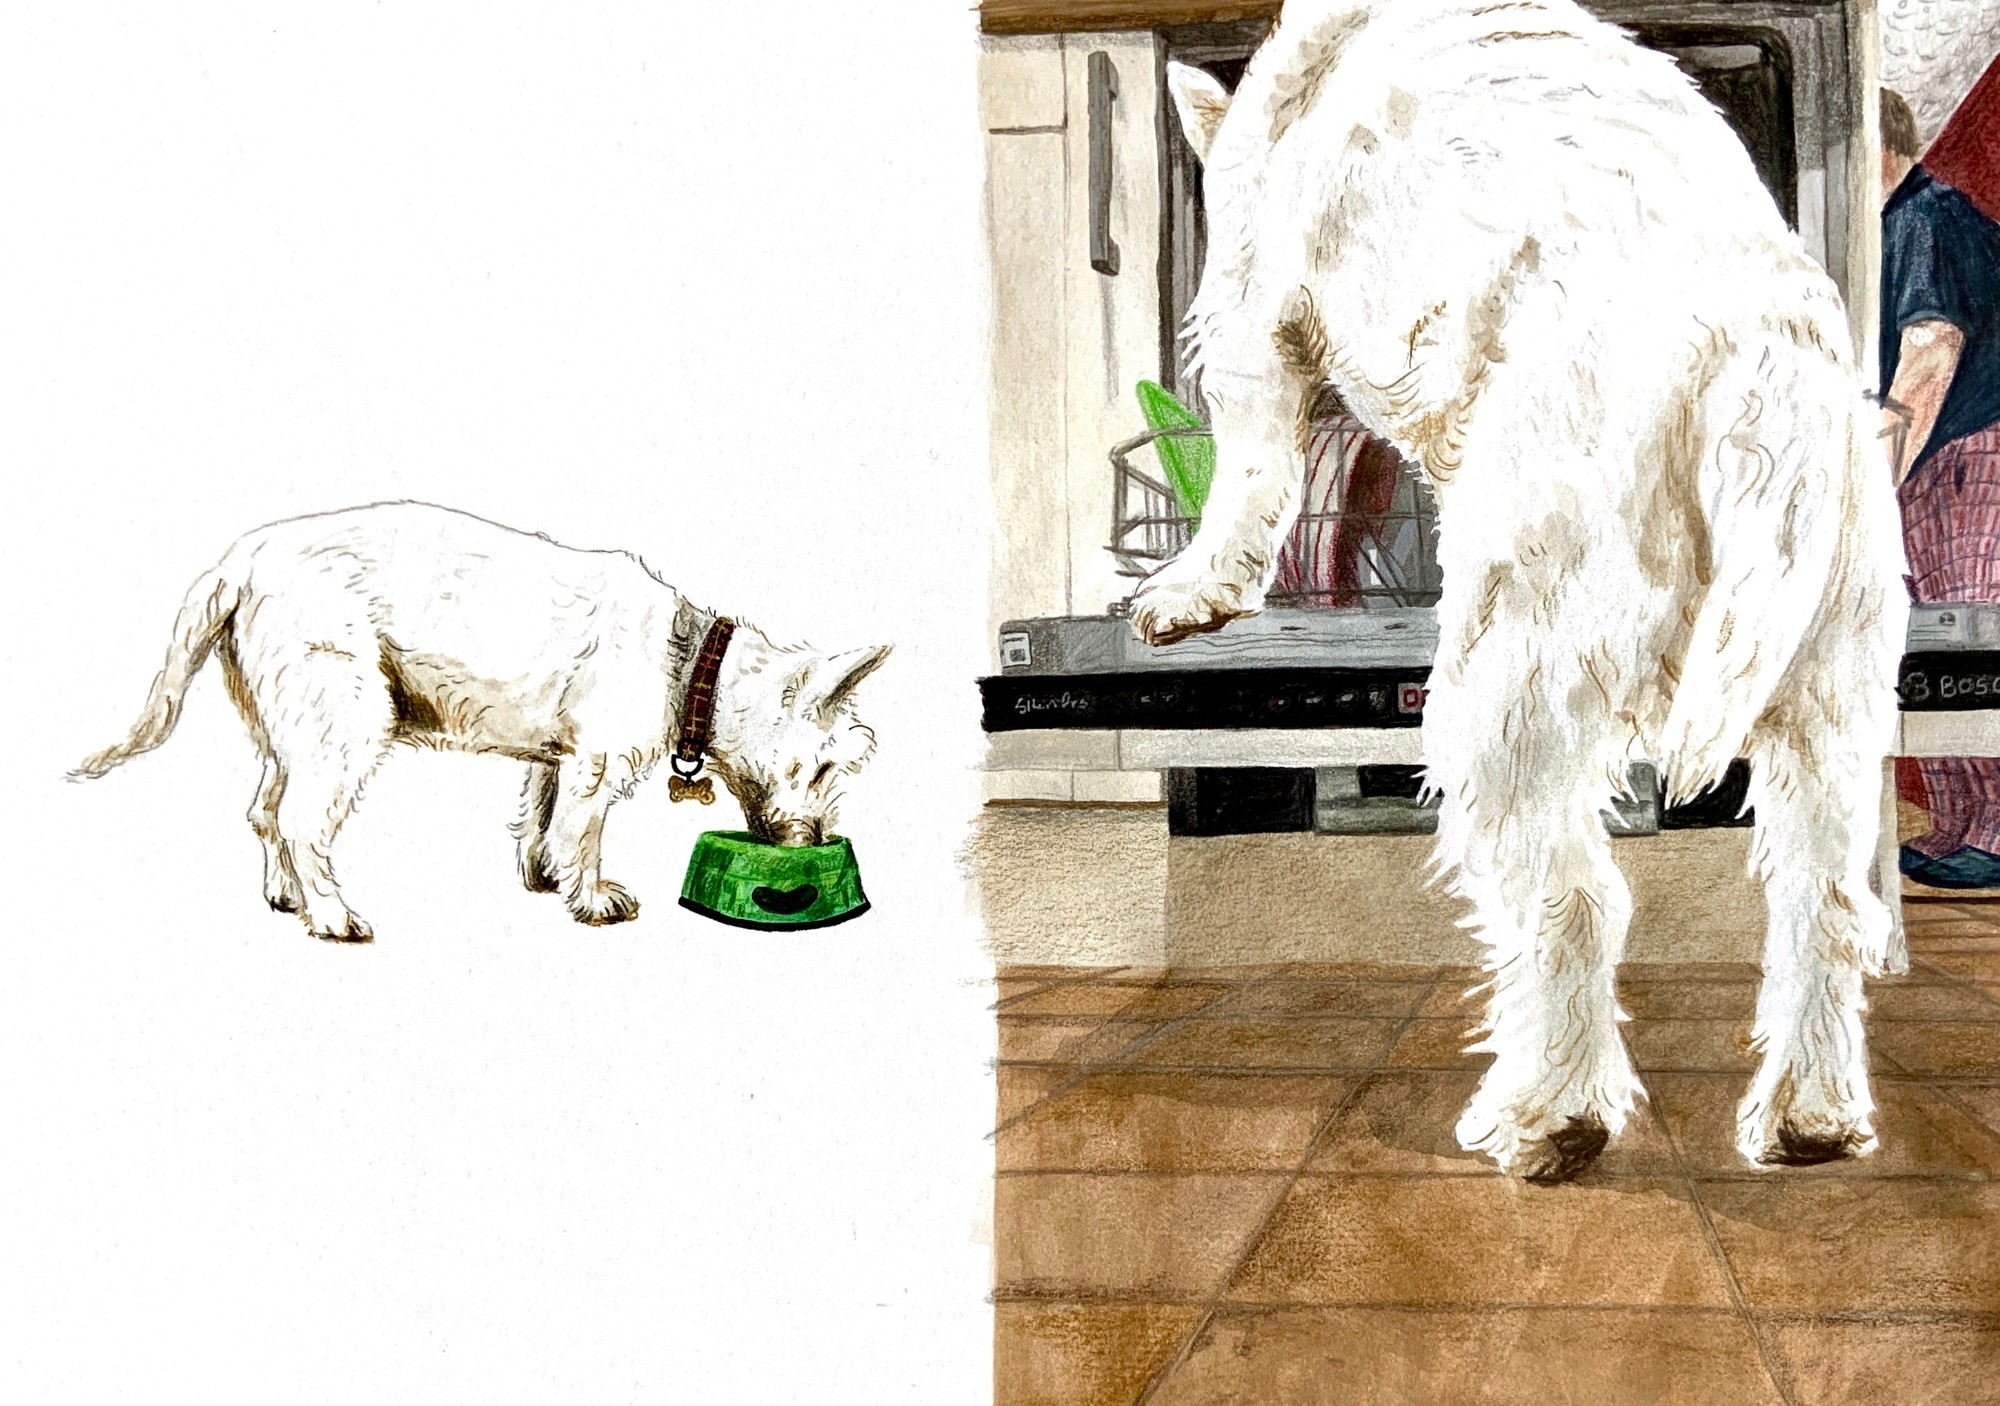 Breakfast! and helping mum clean her plate. Gouache and pencil. Alice Richards